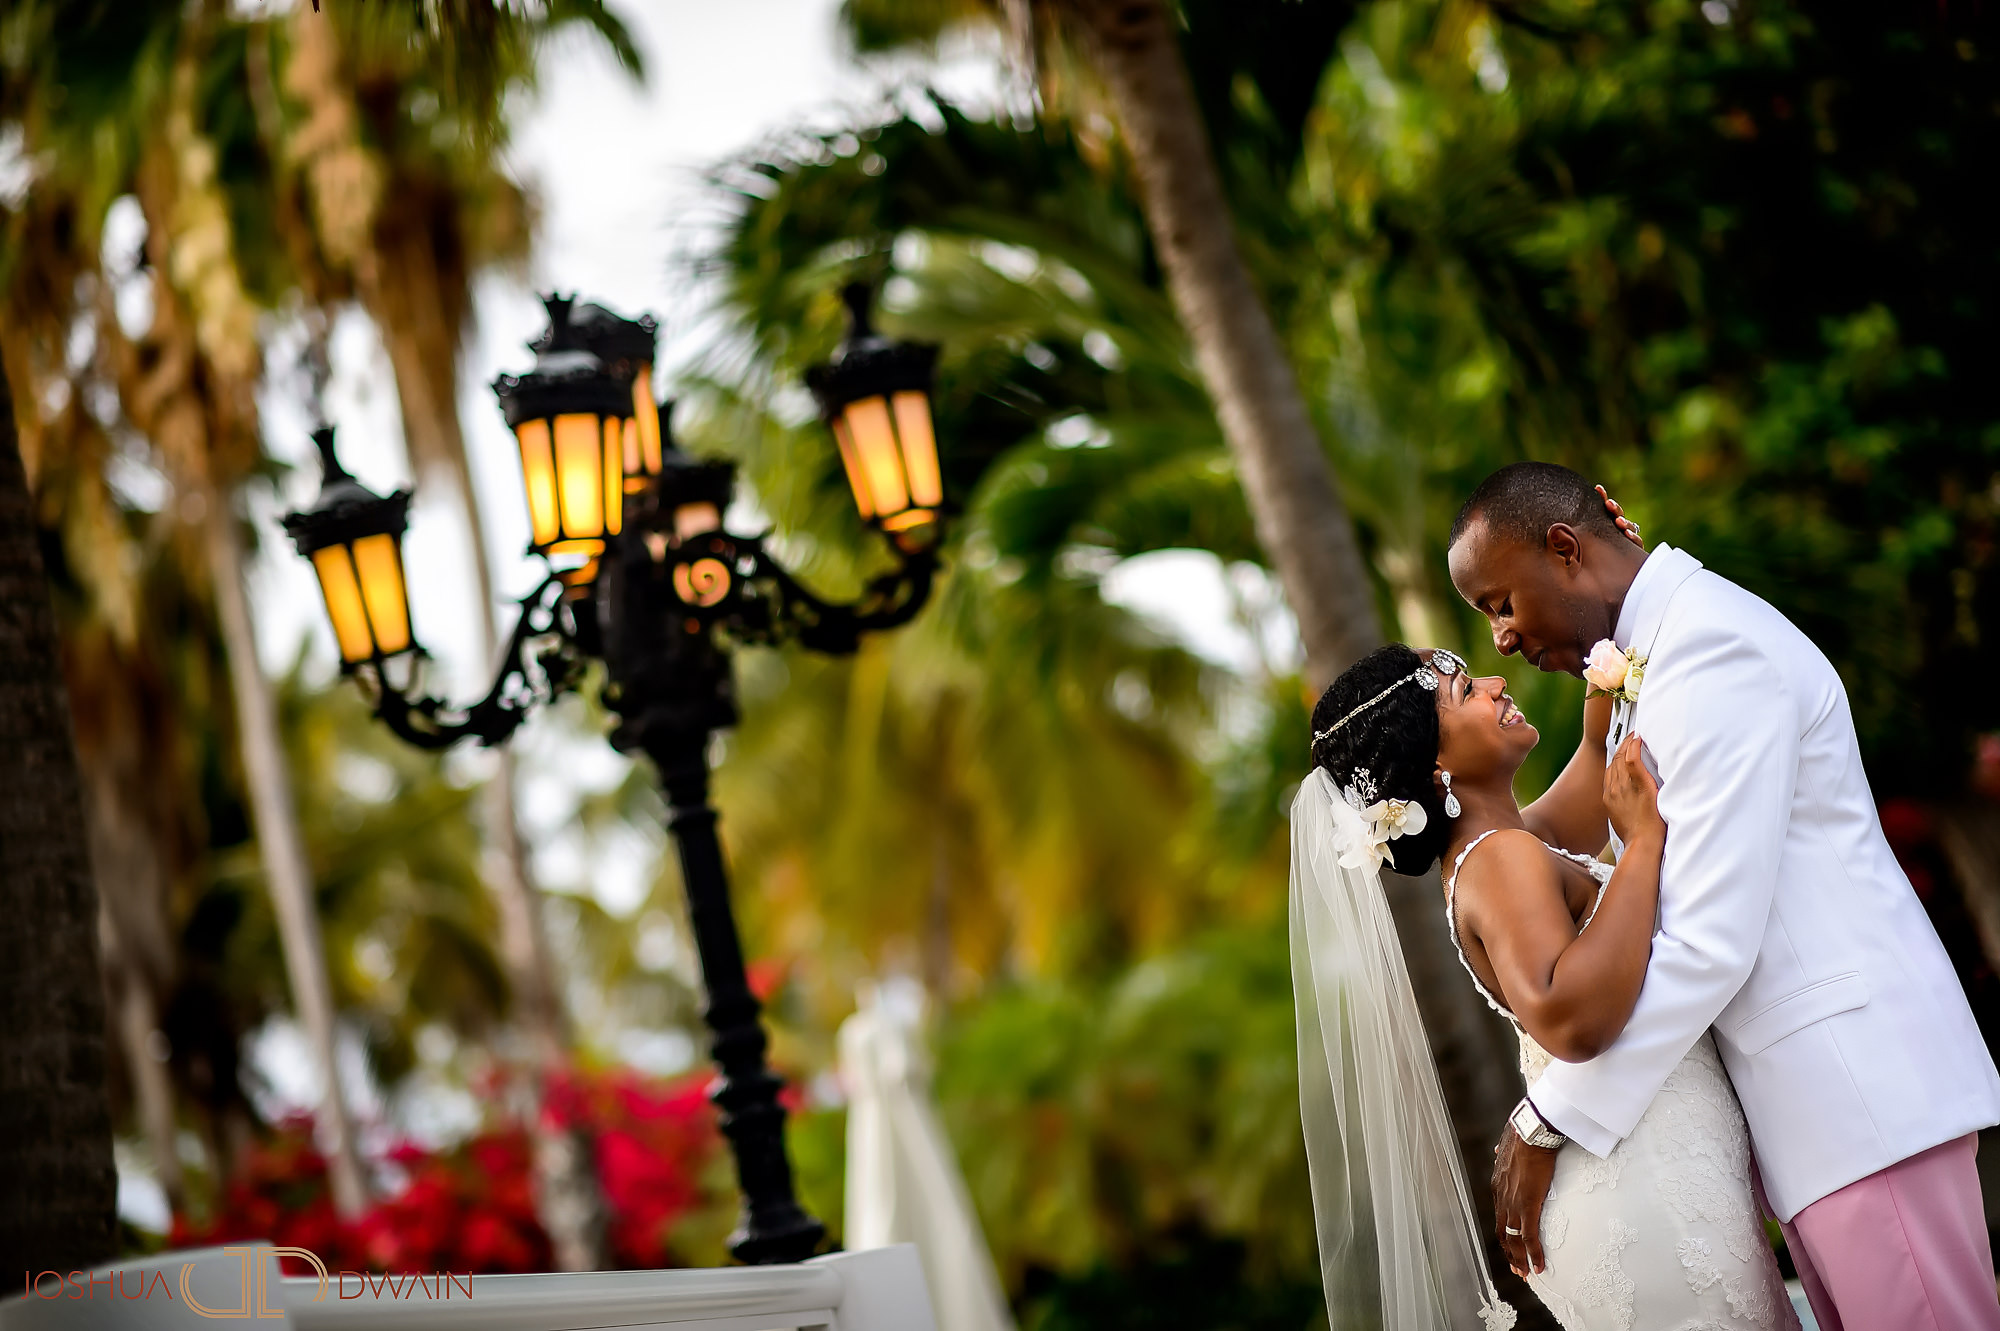 Penelope & Joseph's wedding in Turks & Caicos